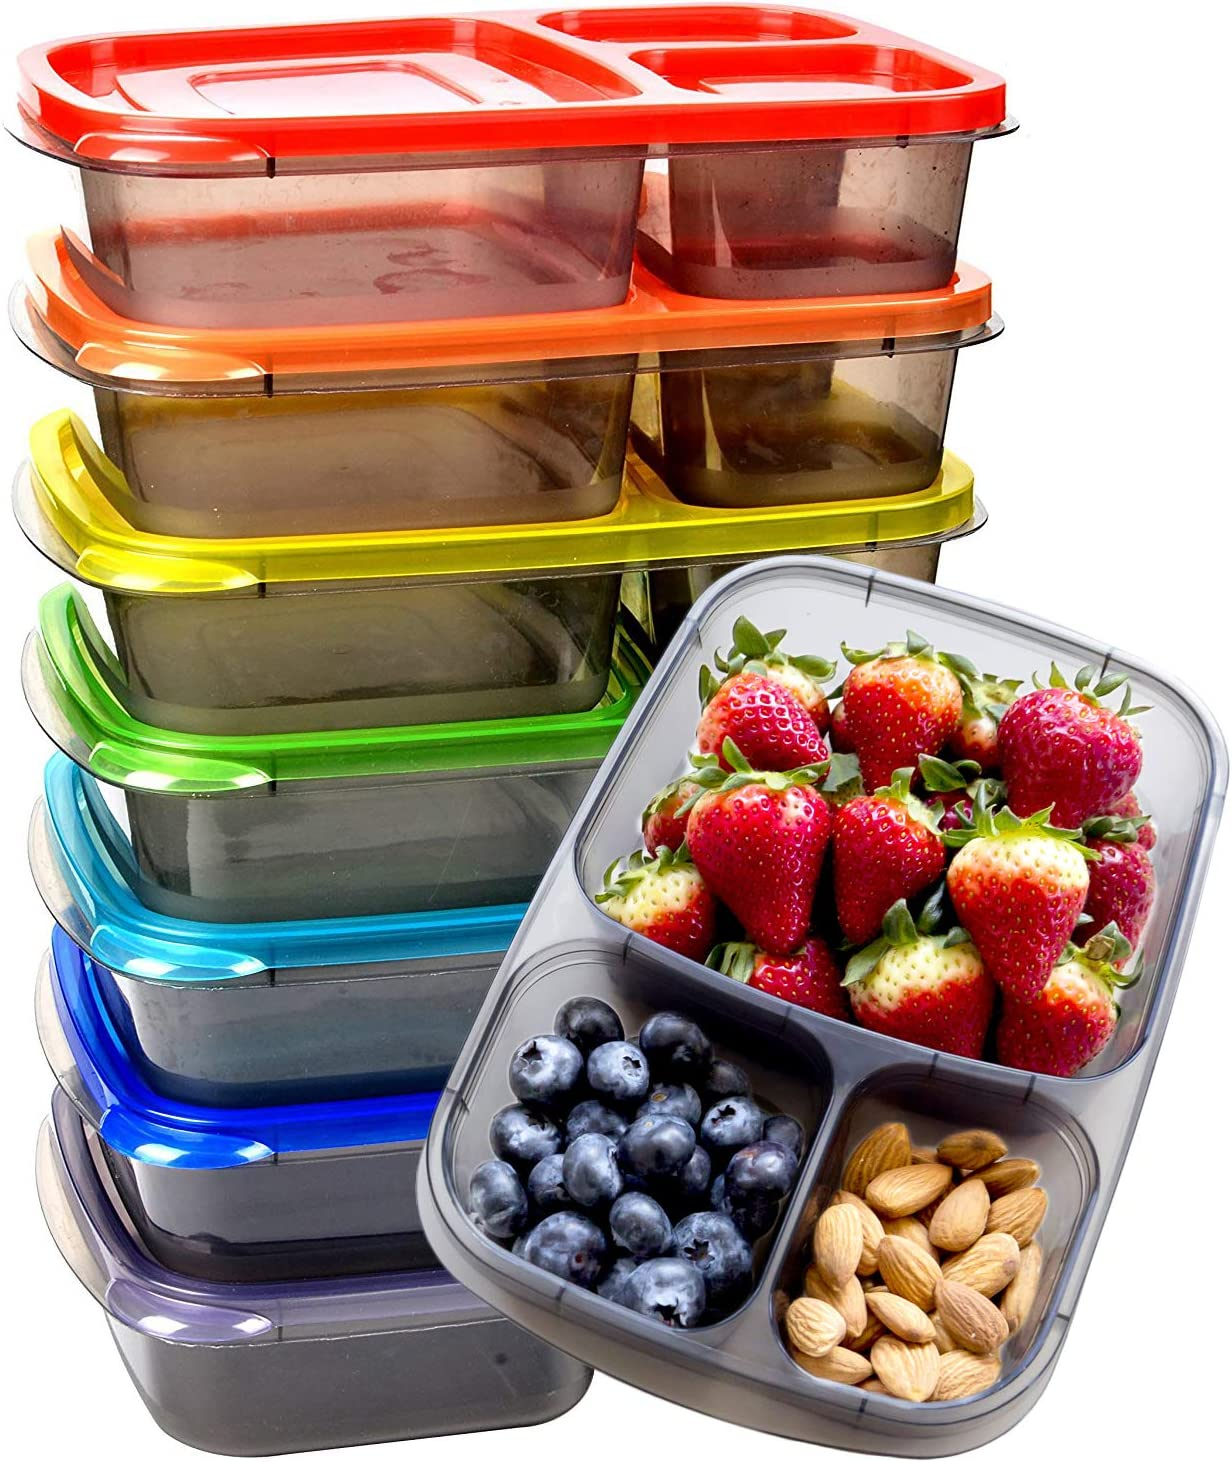 Youngever 7 Pack Bento Lunch Box, Meal Prep Containers, Reusable 3 Compartment Plastic Divided Food Storage Container Boxes